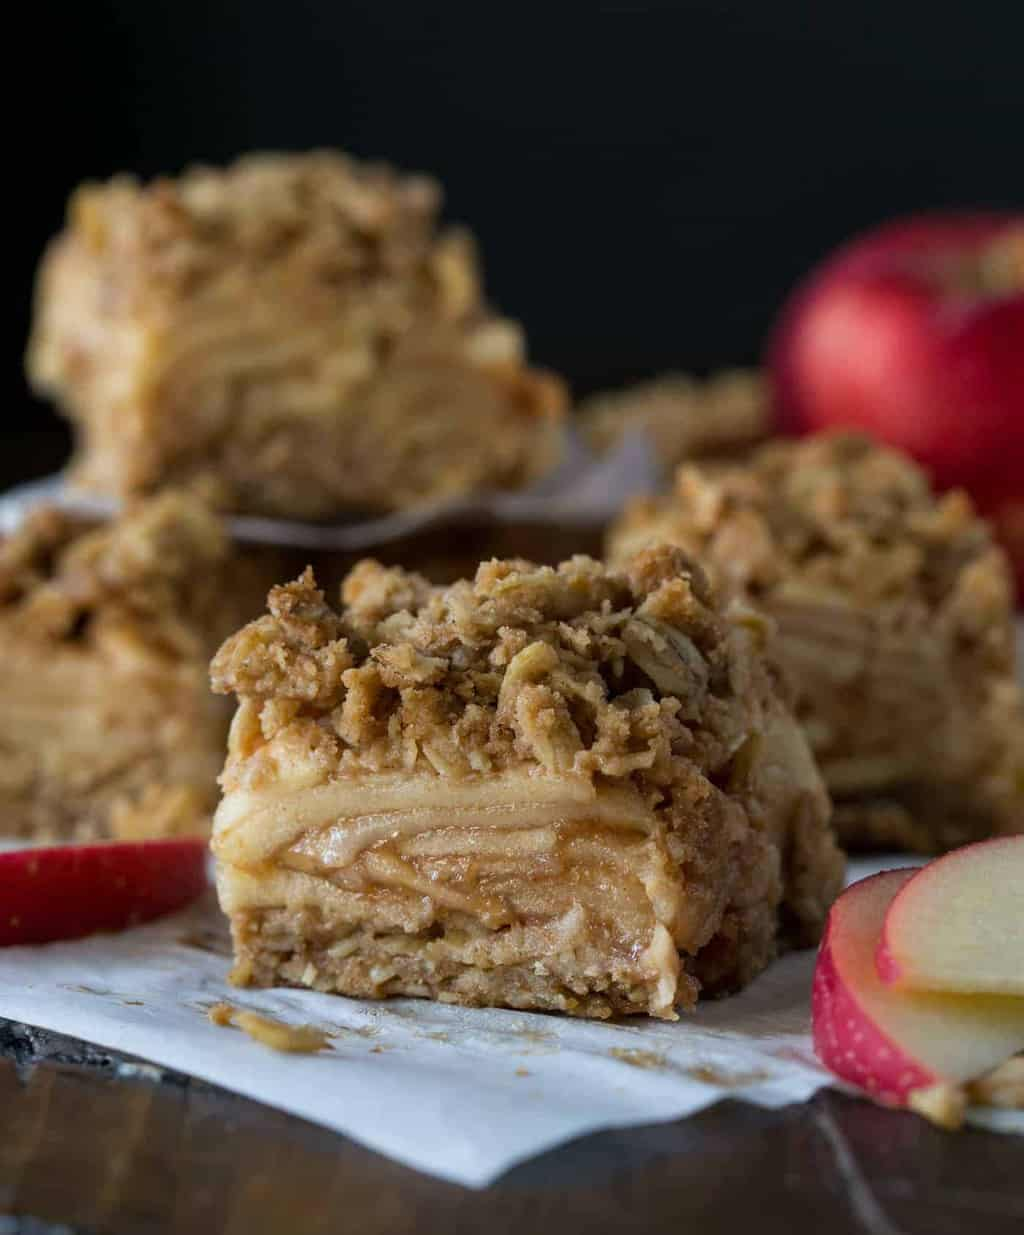 Slices of Apple Crisp Bars with layers of apples, and a crunchy oatmeal crips topping on parchment paper.